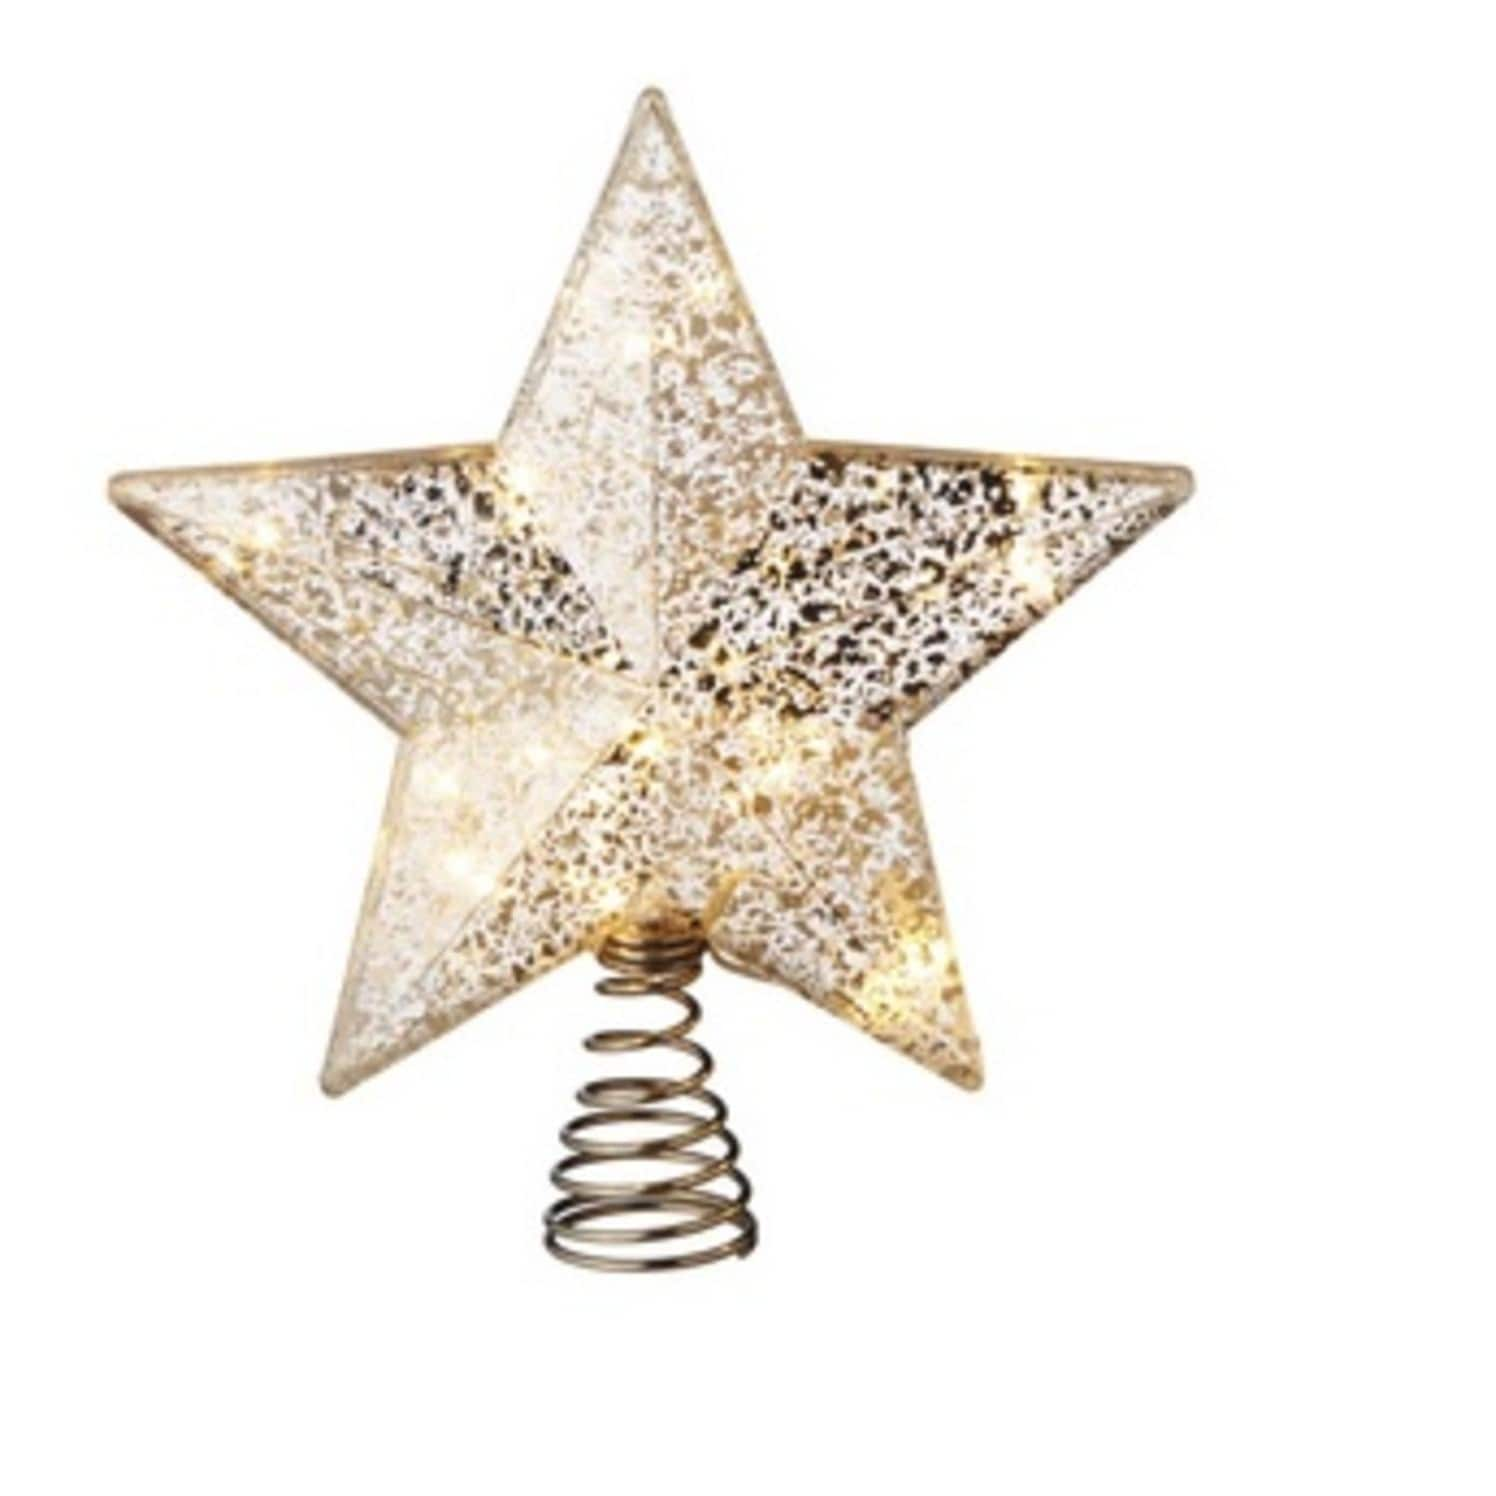 9 25 Battery Operated Pre Lit Silver Speckled Star Christmas Tree Topper Clear Lights